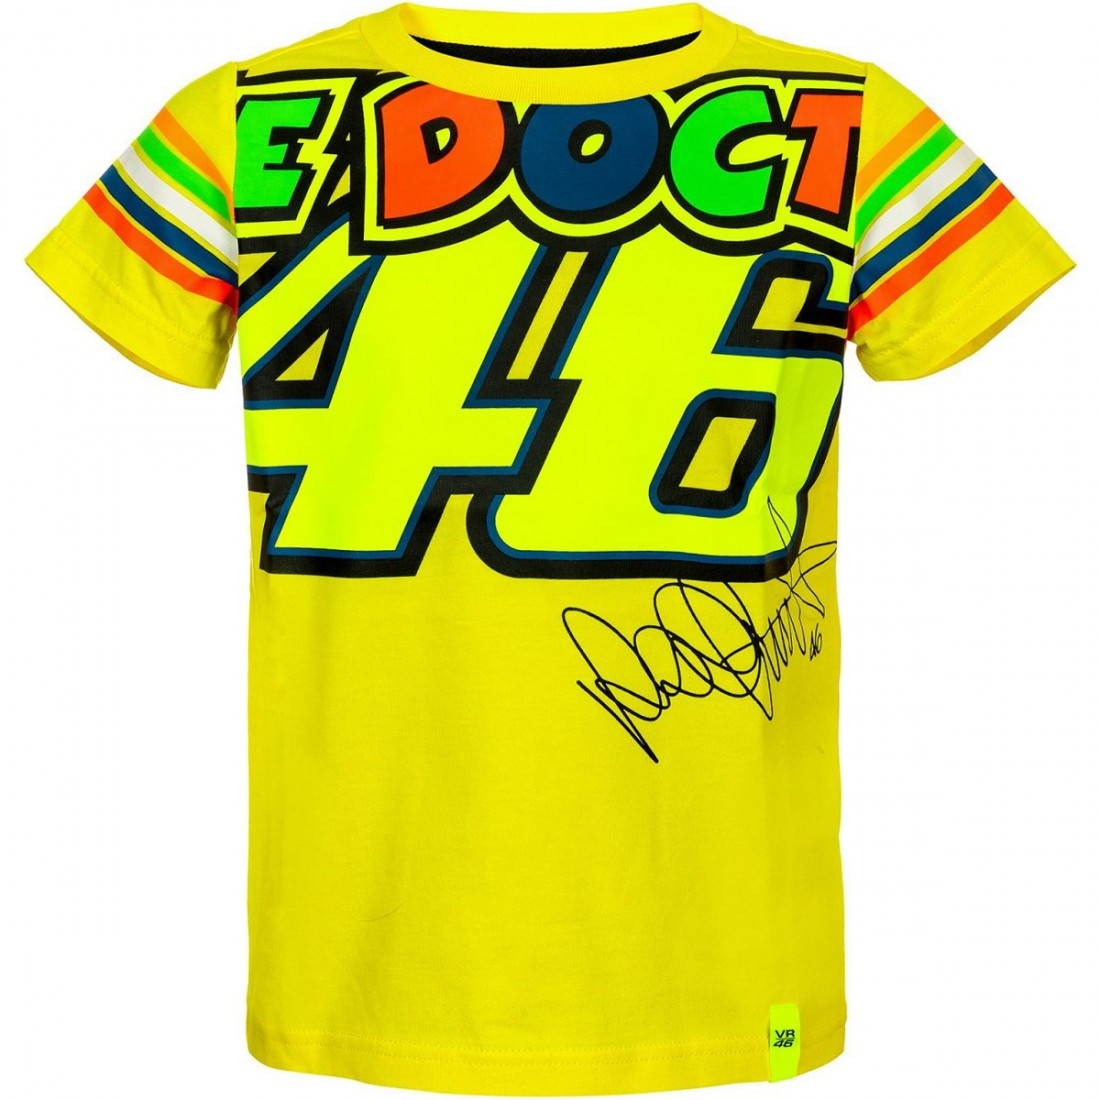 Junior Rossi The 307901 Road Doctor Vr46 46 Maillot Off gybfY76